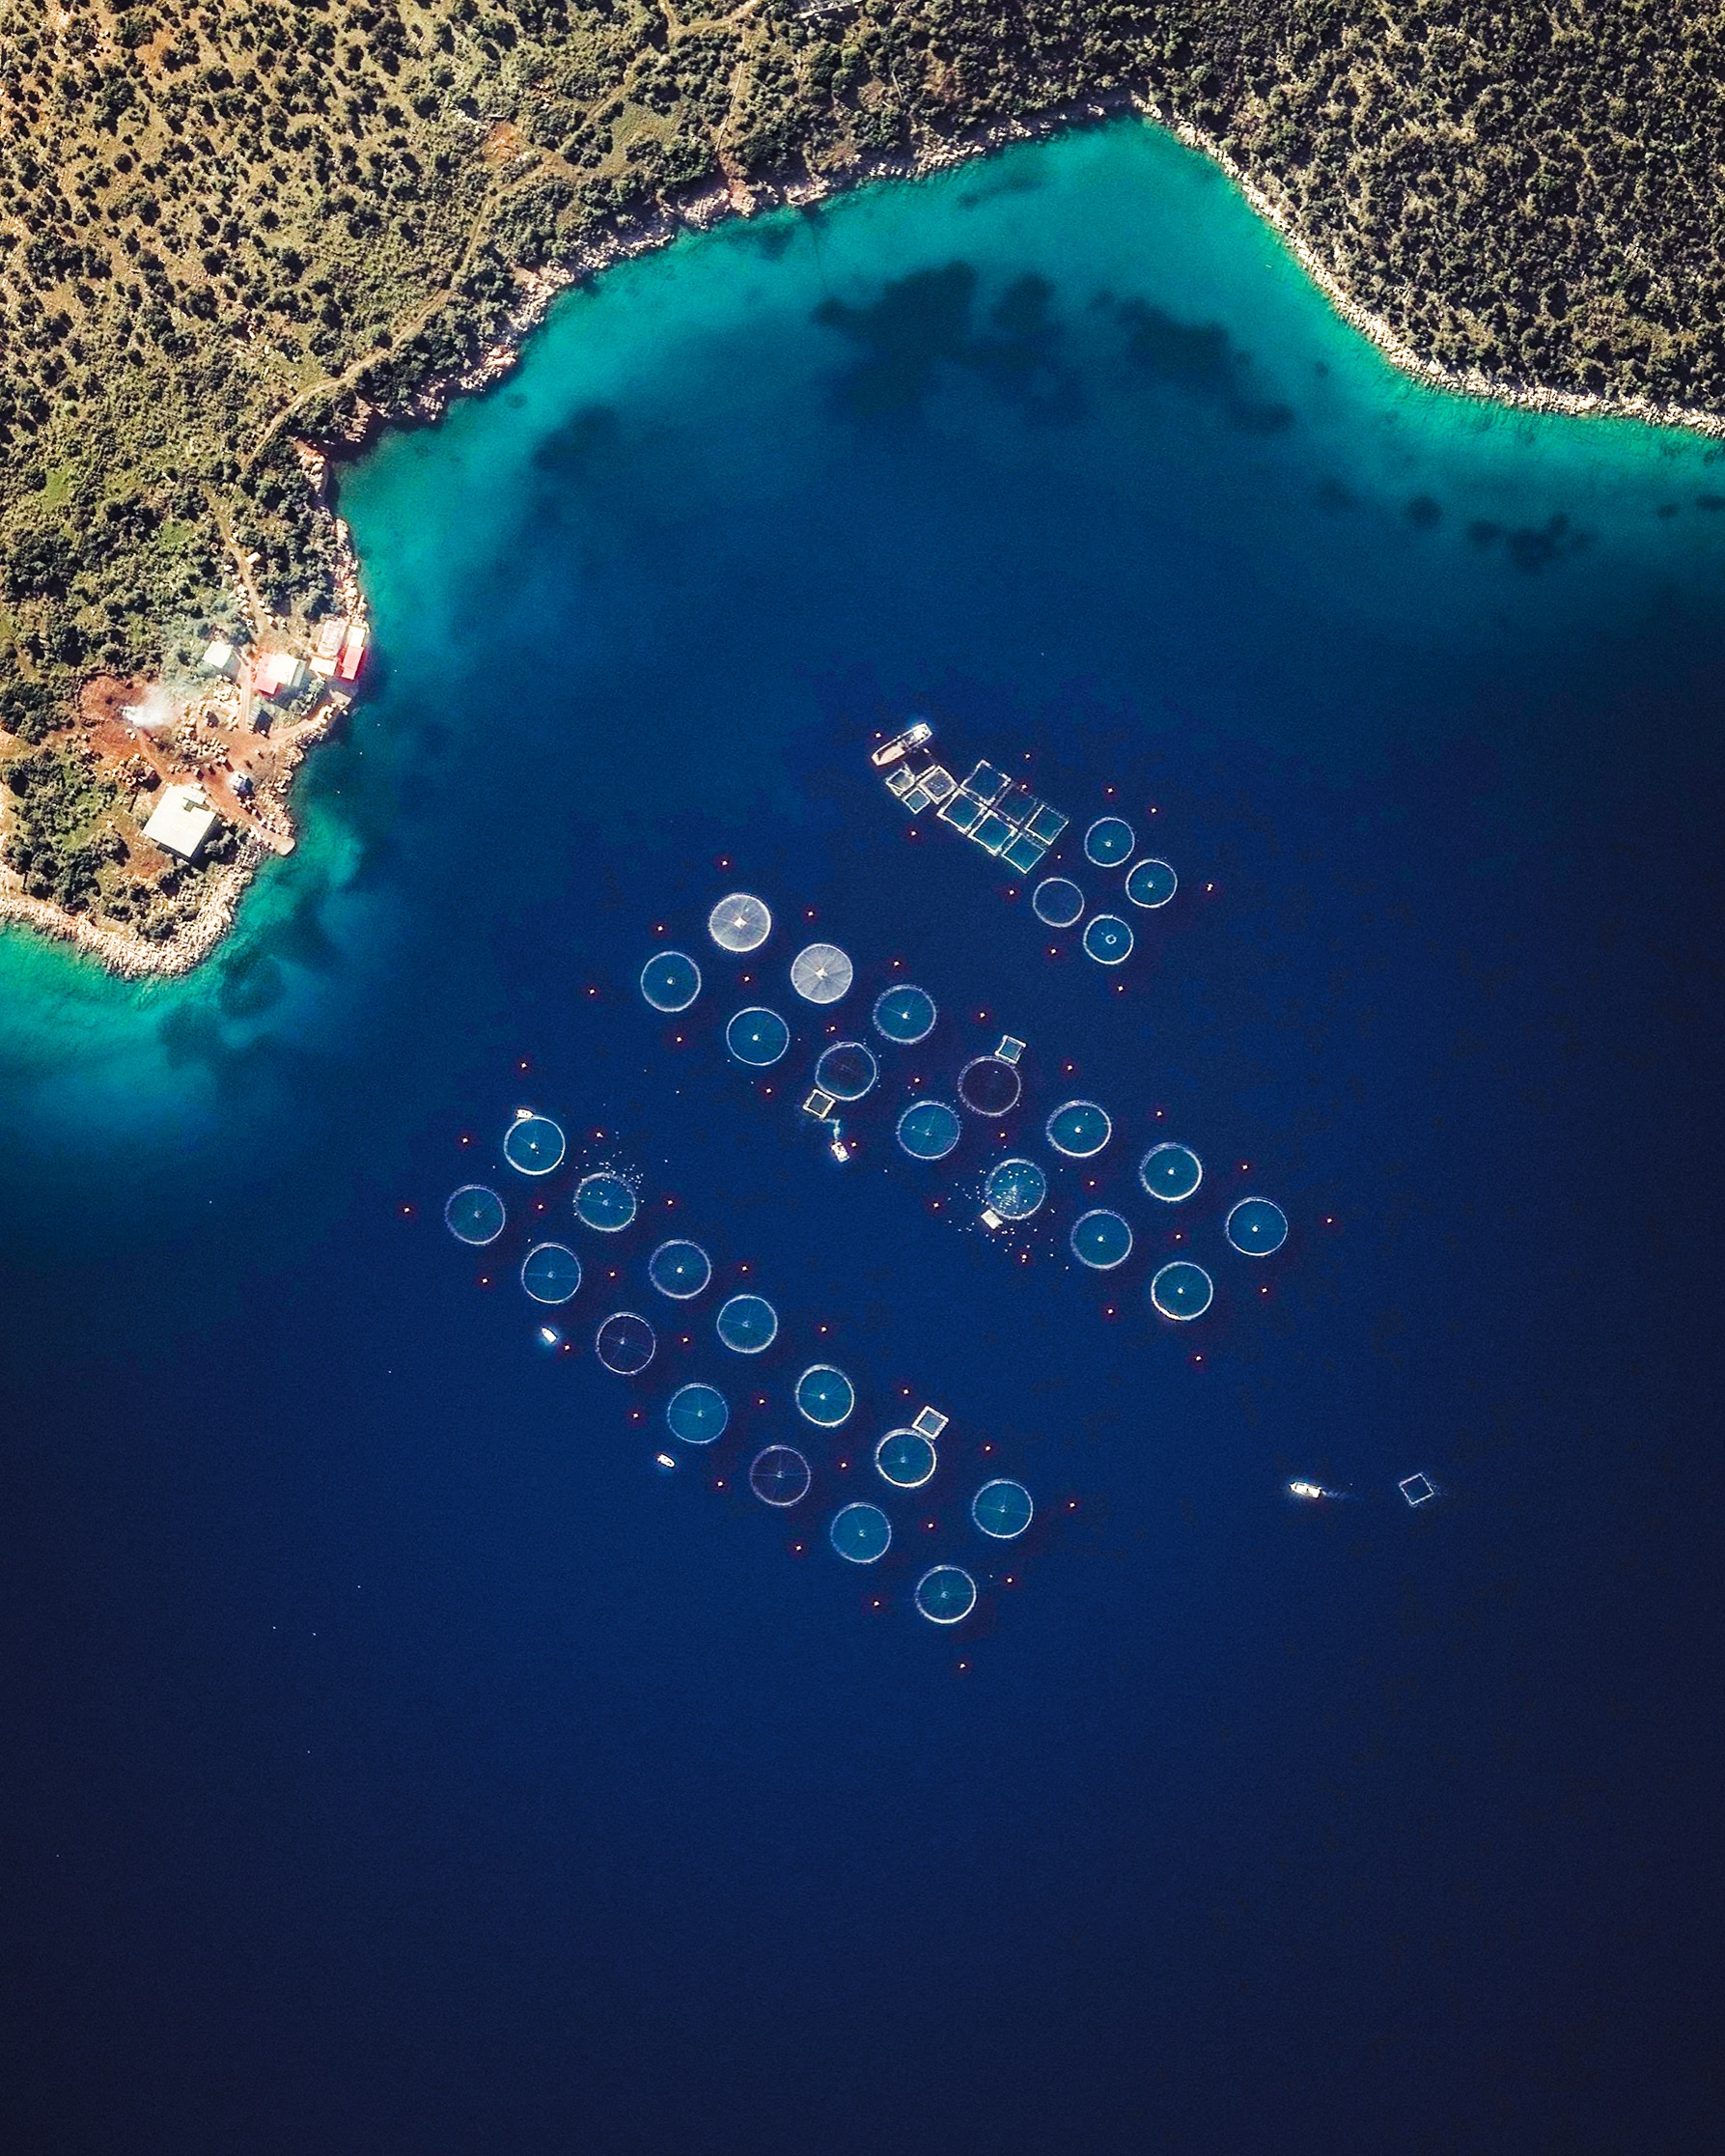 """Check out this Overview, which shows a fish farming operation in the Saronic Gulf, just off the eastern tip of Greece's Peloponnese peninsula. Fish farming — or pisciculture — involves raising fish in tanks or enclosures, usually for food. In 2015, Greece had at least 300 of these farms and raised more than 242 million pounds (109 million kg) of fish and mussels.  37°36'34.5""""N, 23°19'04.0""""E  Source imagery: DigitalGlobe"""